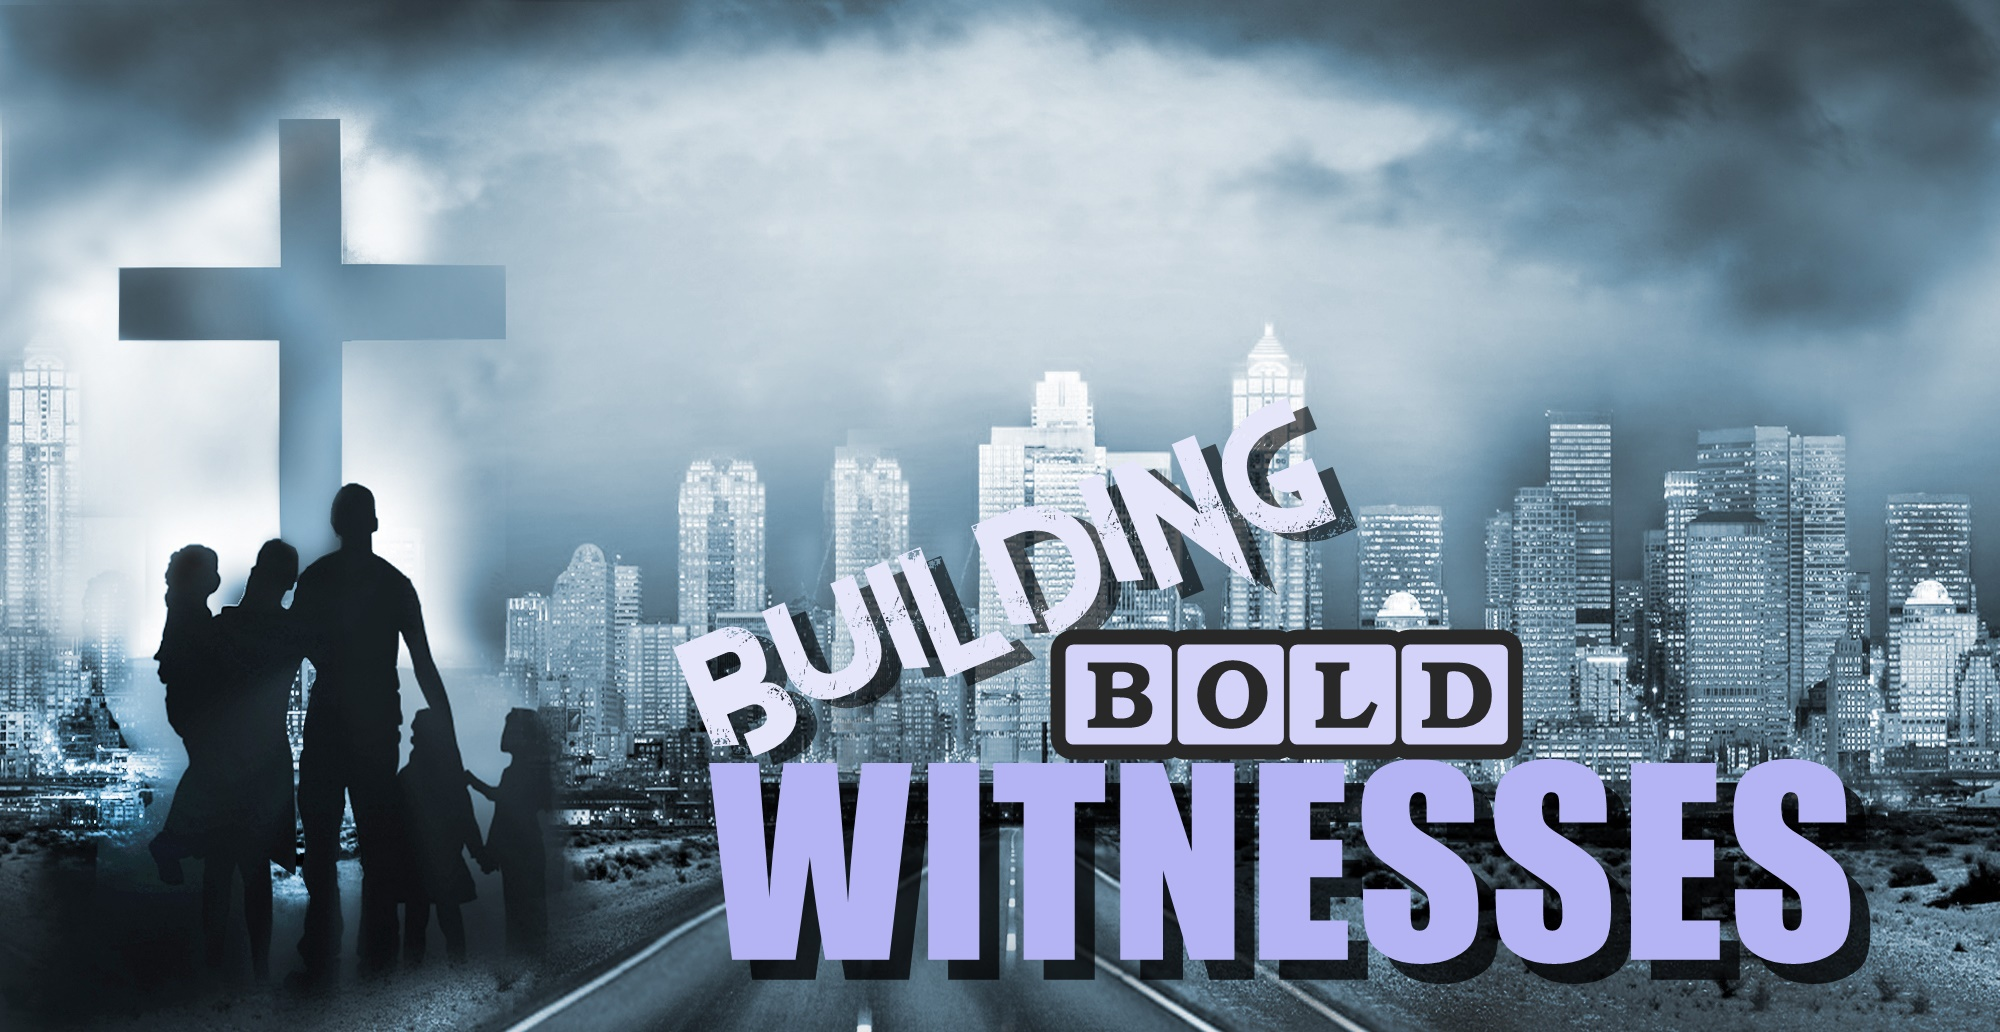 BUILDING BOLD WITNESSES